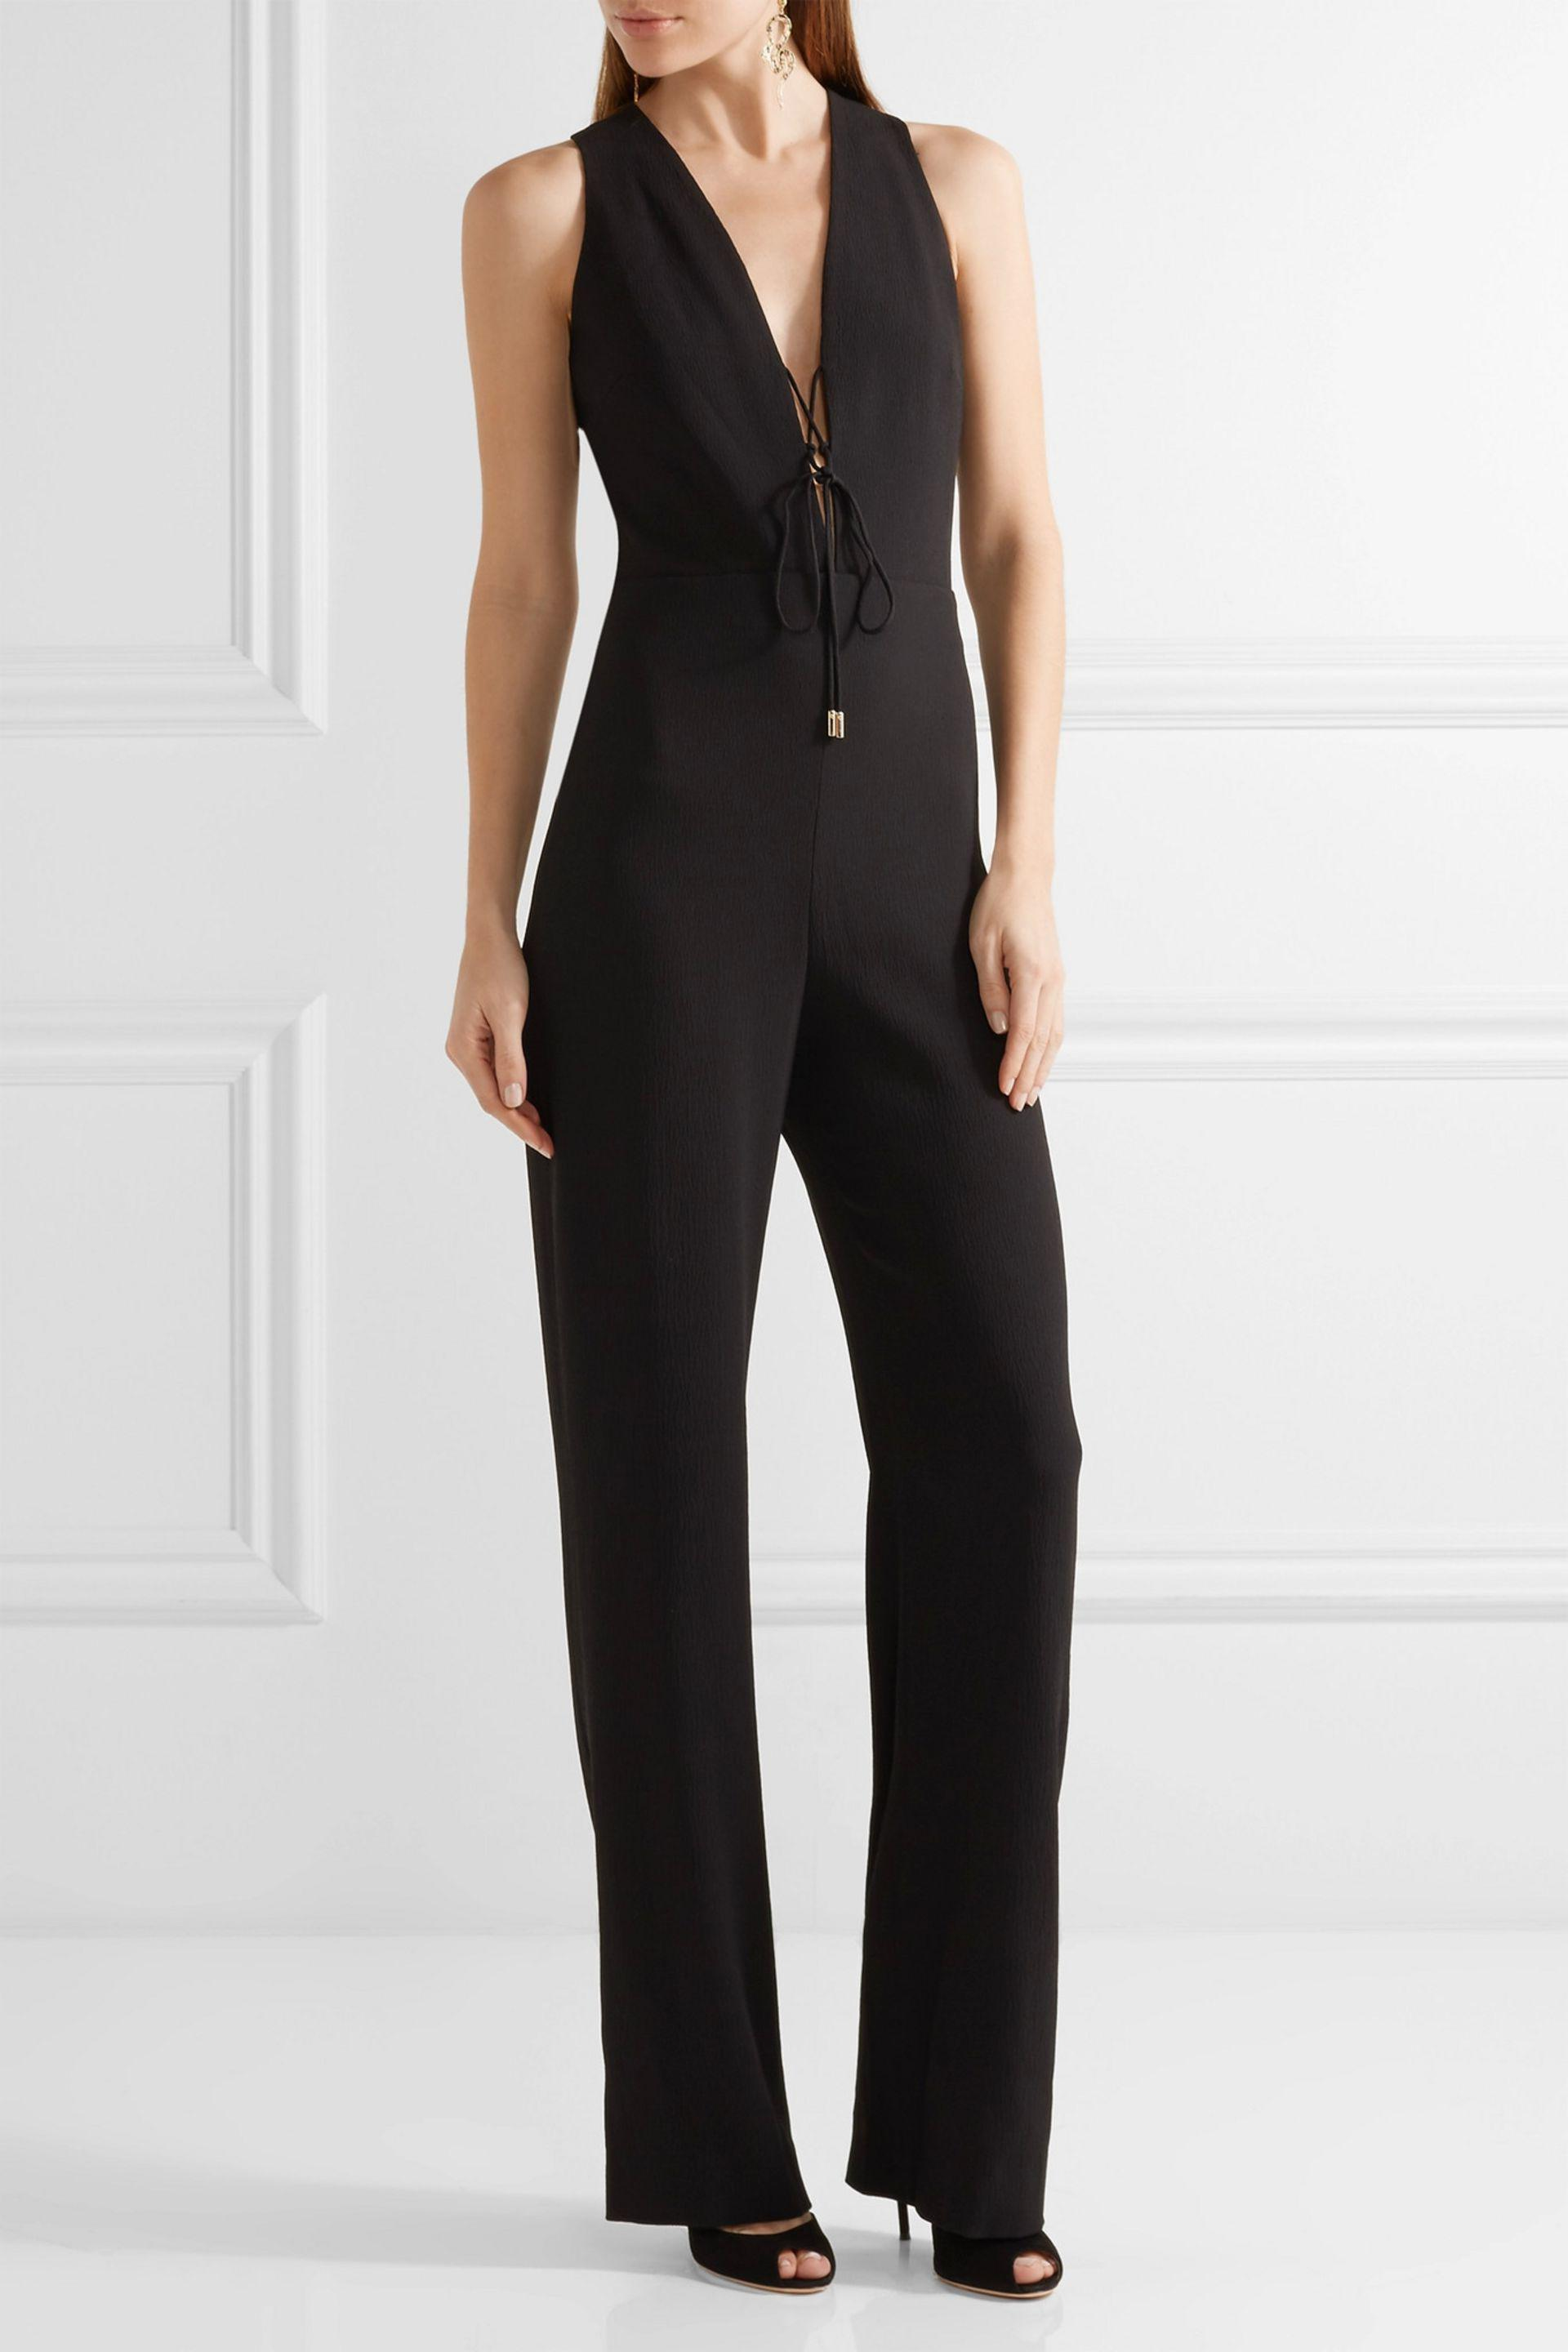 ee786fd5ace7 Cushnie et Ochs - Black Claudia Lace-up Crinkled Stretch-crepe Jumpsuit -  Lyst. View fullscreen